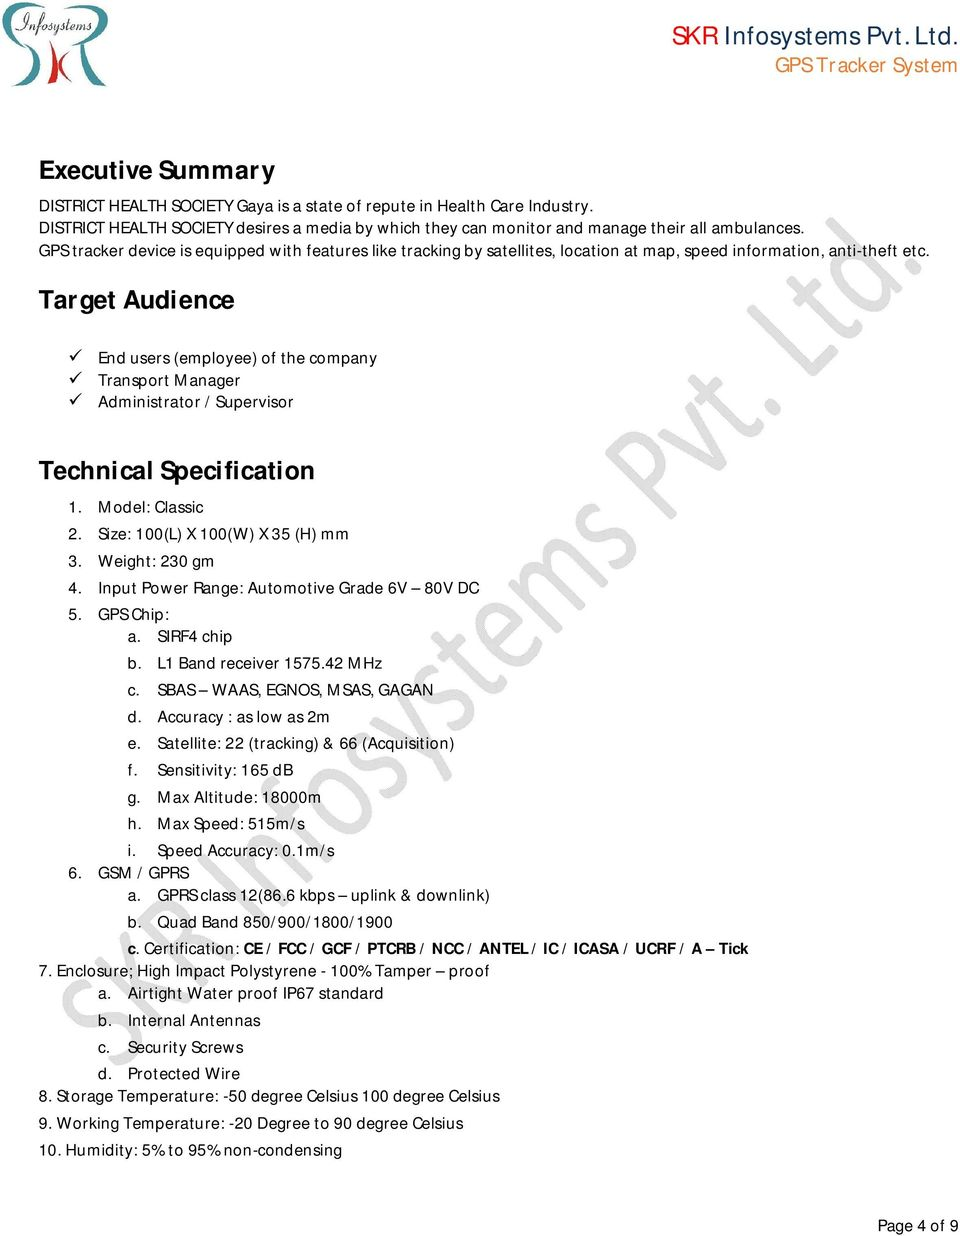 Target Audience End users (employee) of the company Transport Manager Administrator / Supervisor Technical Specification 1. Model: Classic 2. Size: 100(L) X 100(W) X 35 (H) mm 3. Weight: 230 gm 4.